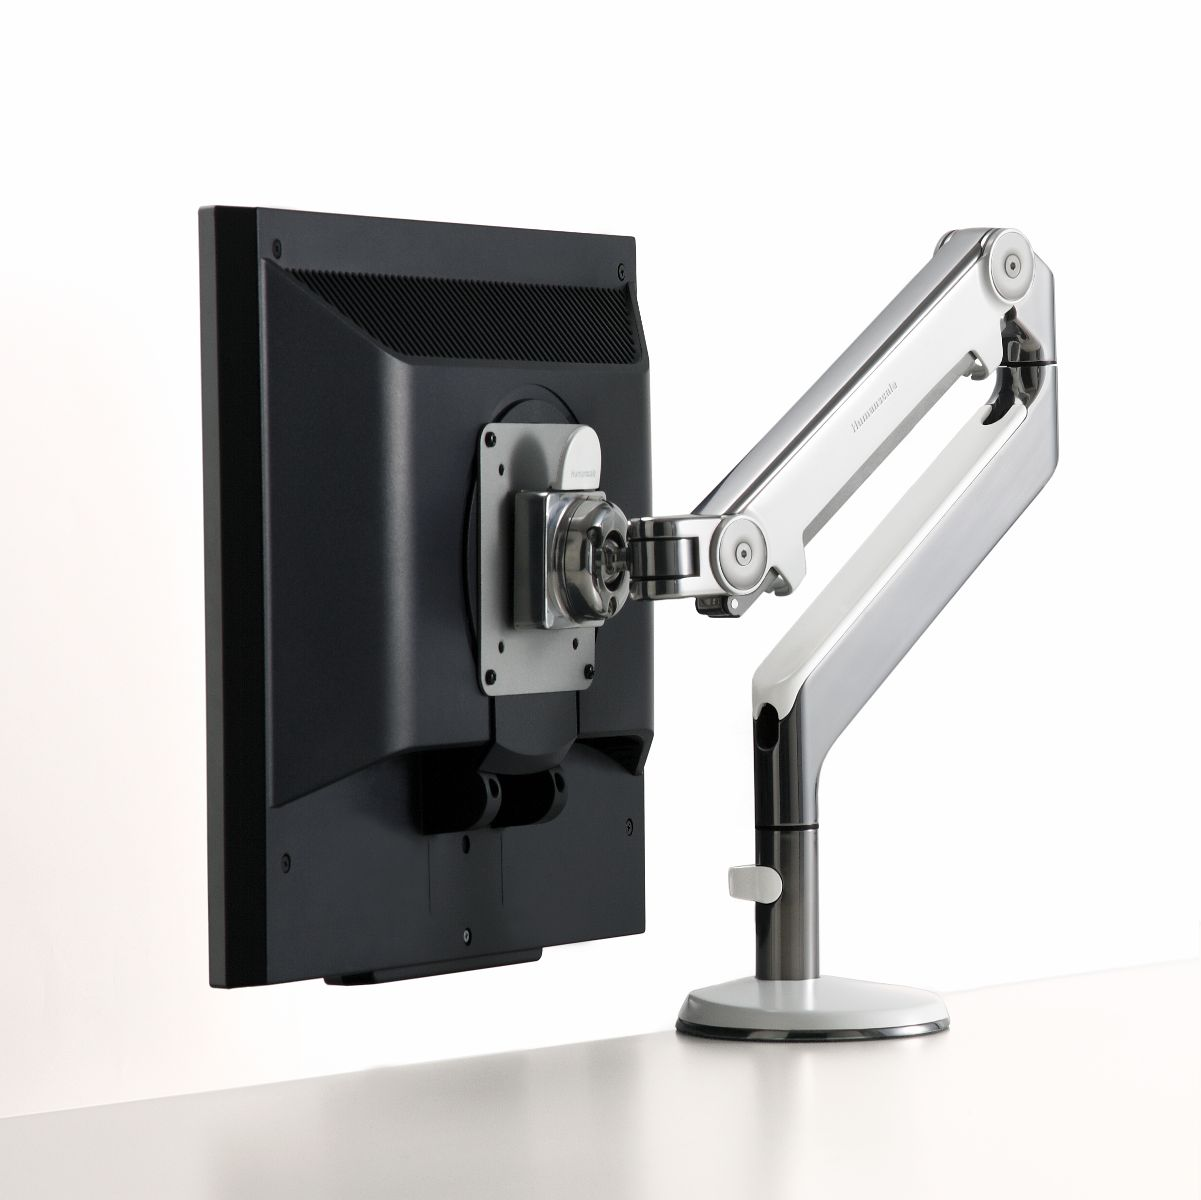 M2 Adjustable Monitor Arm From Humanscale